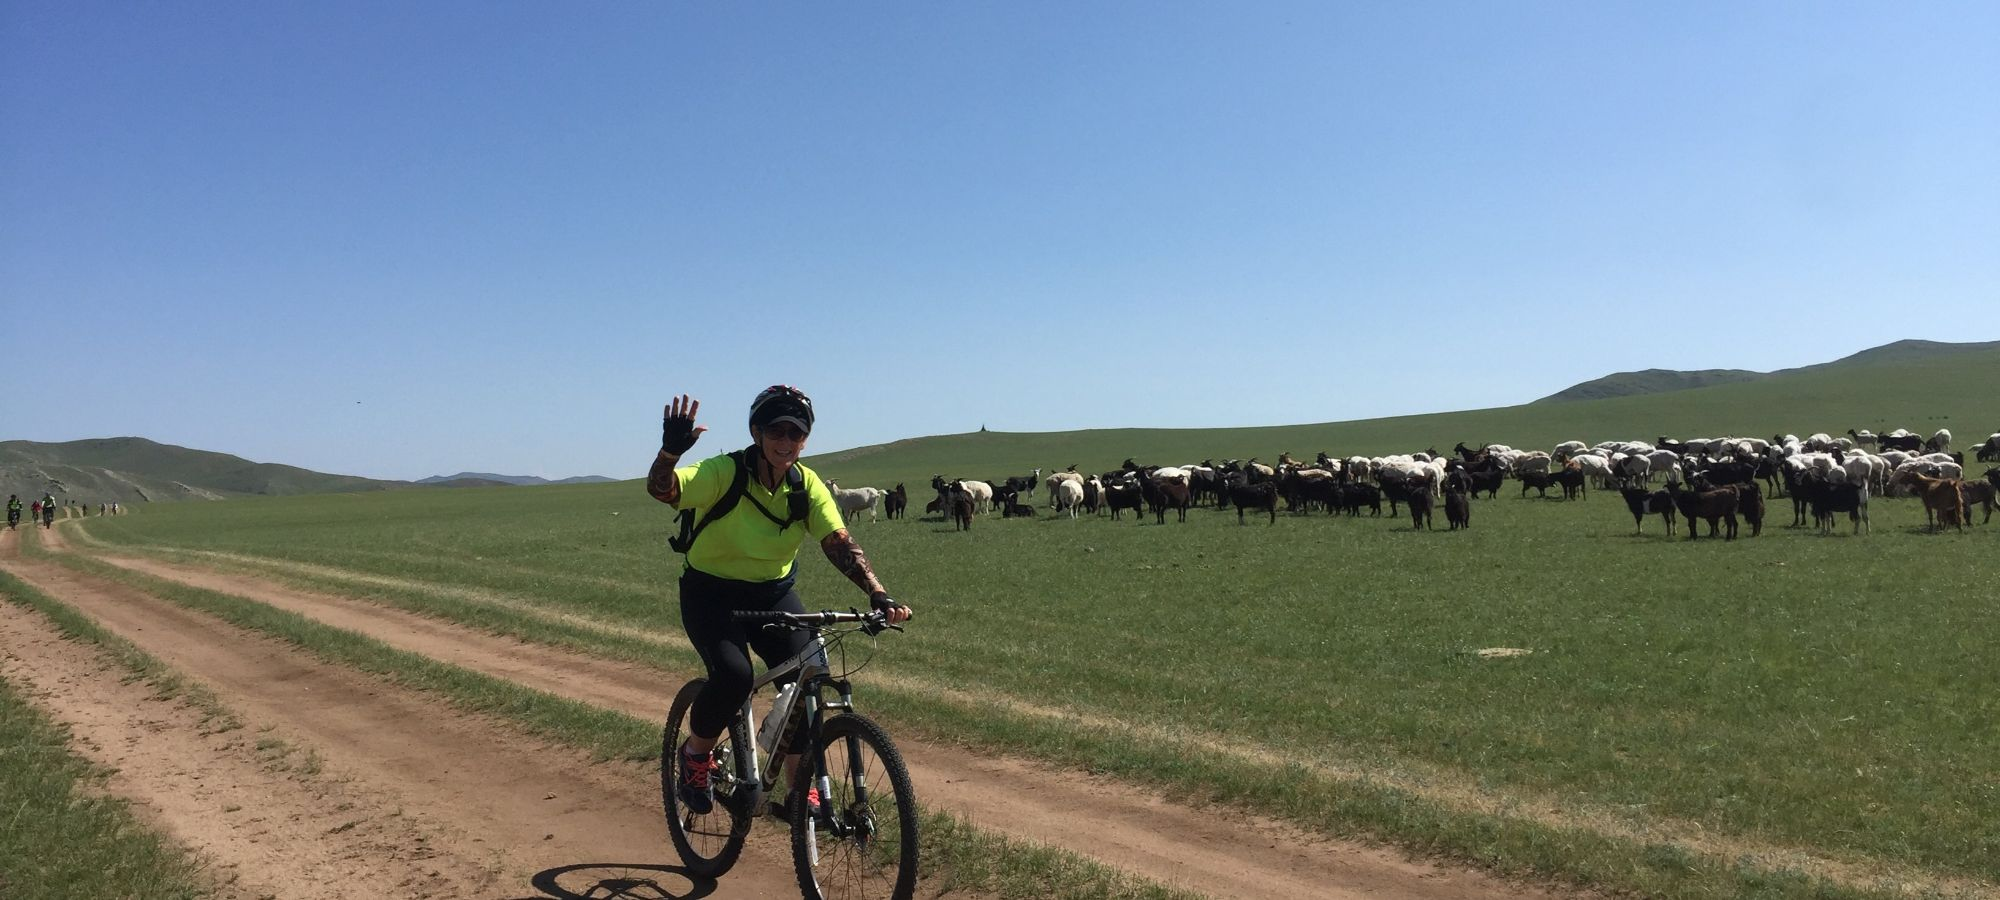 Cycling Holidays Mongolia